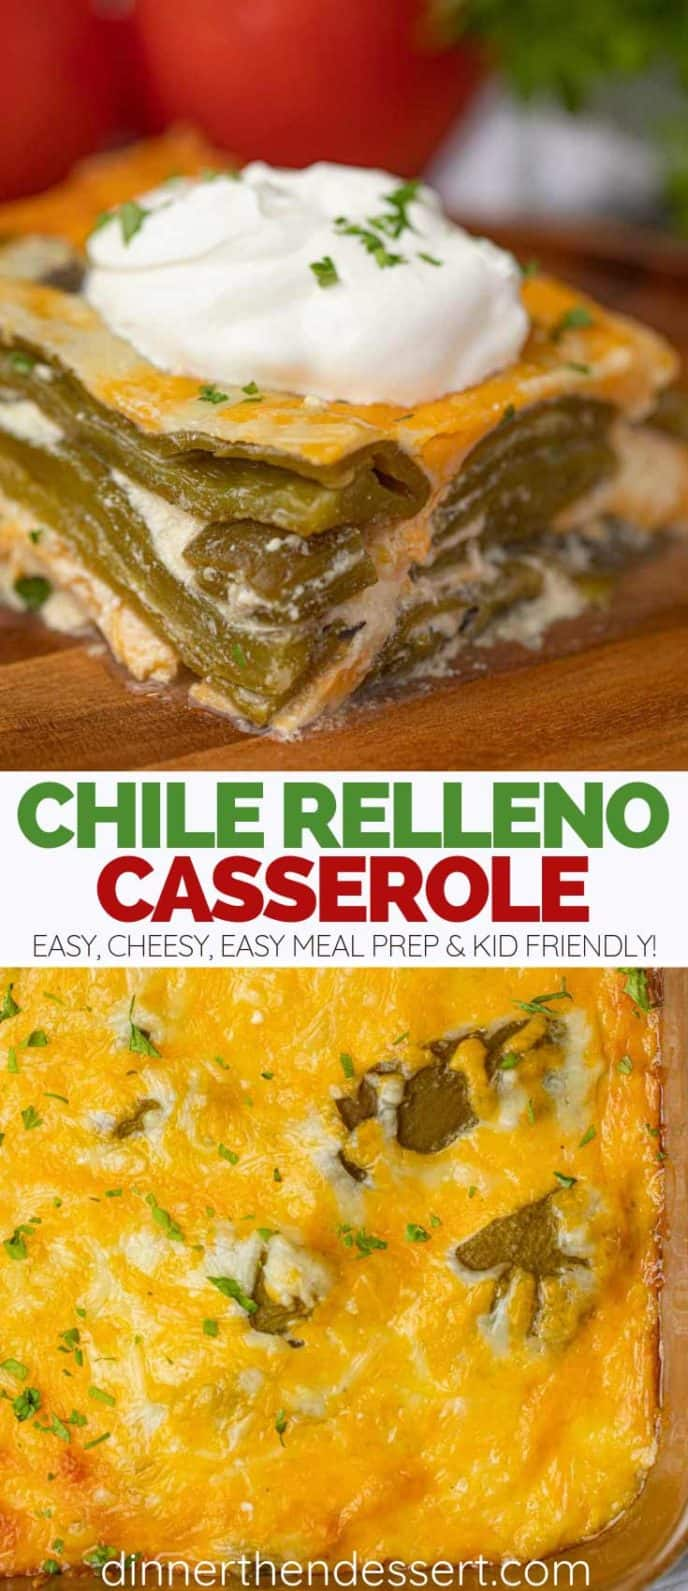 Collage Photos of Chile Relleno Casserole Slice and Pan